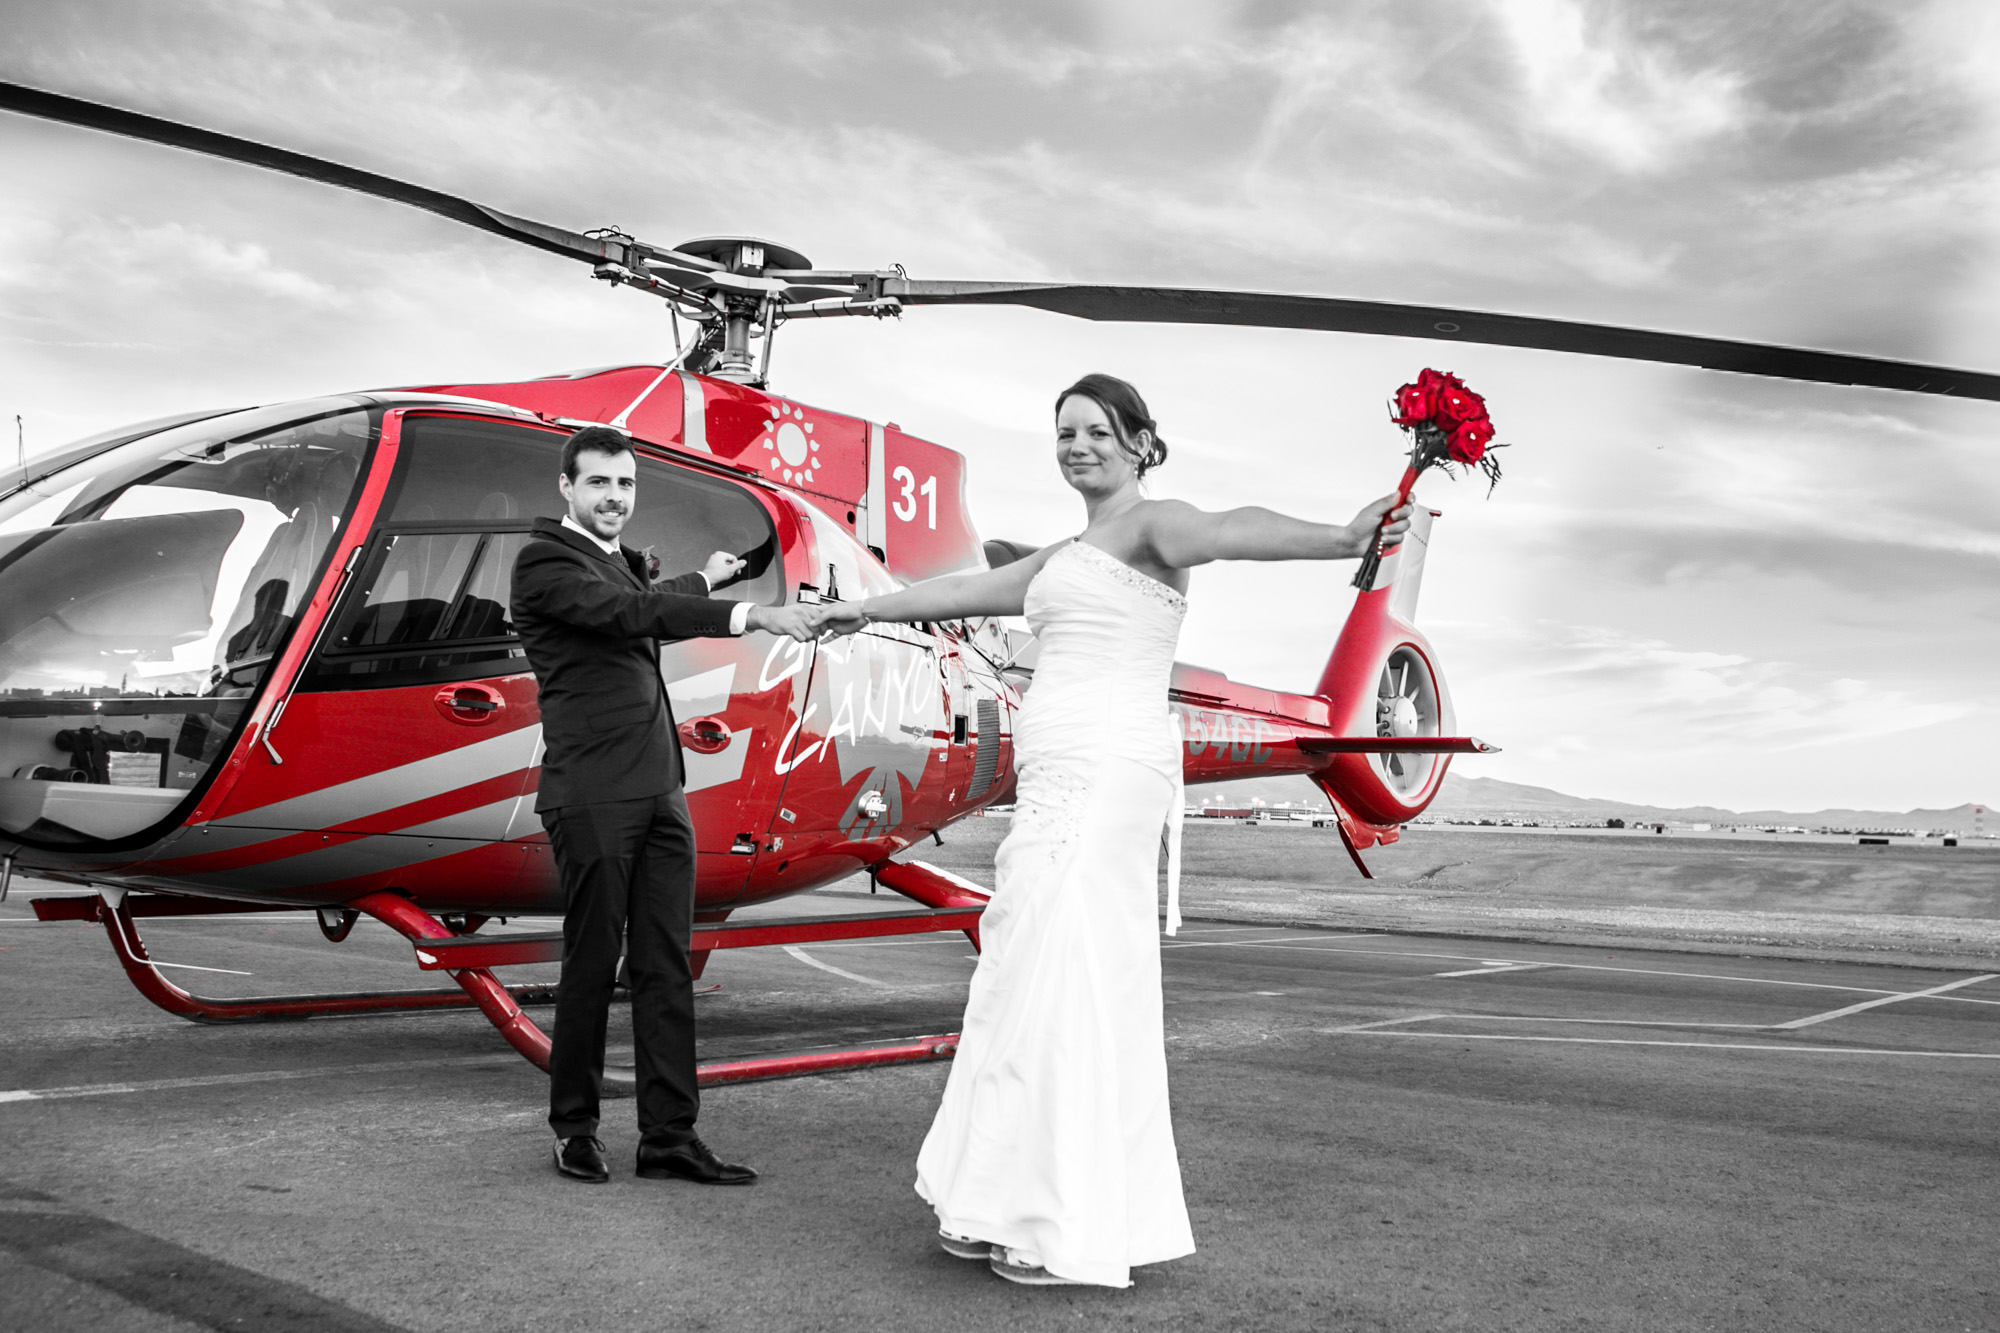 Helicopter Wedding Ceremony at The Grand Canyon - Have a beautiful Grand Canyon Ceremony and say